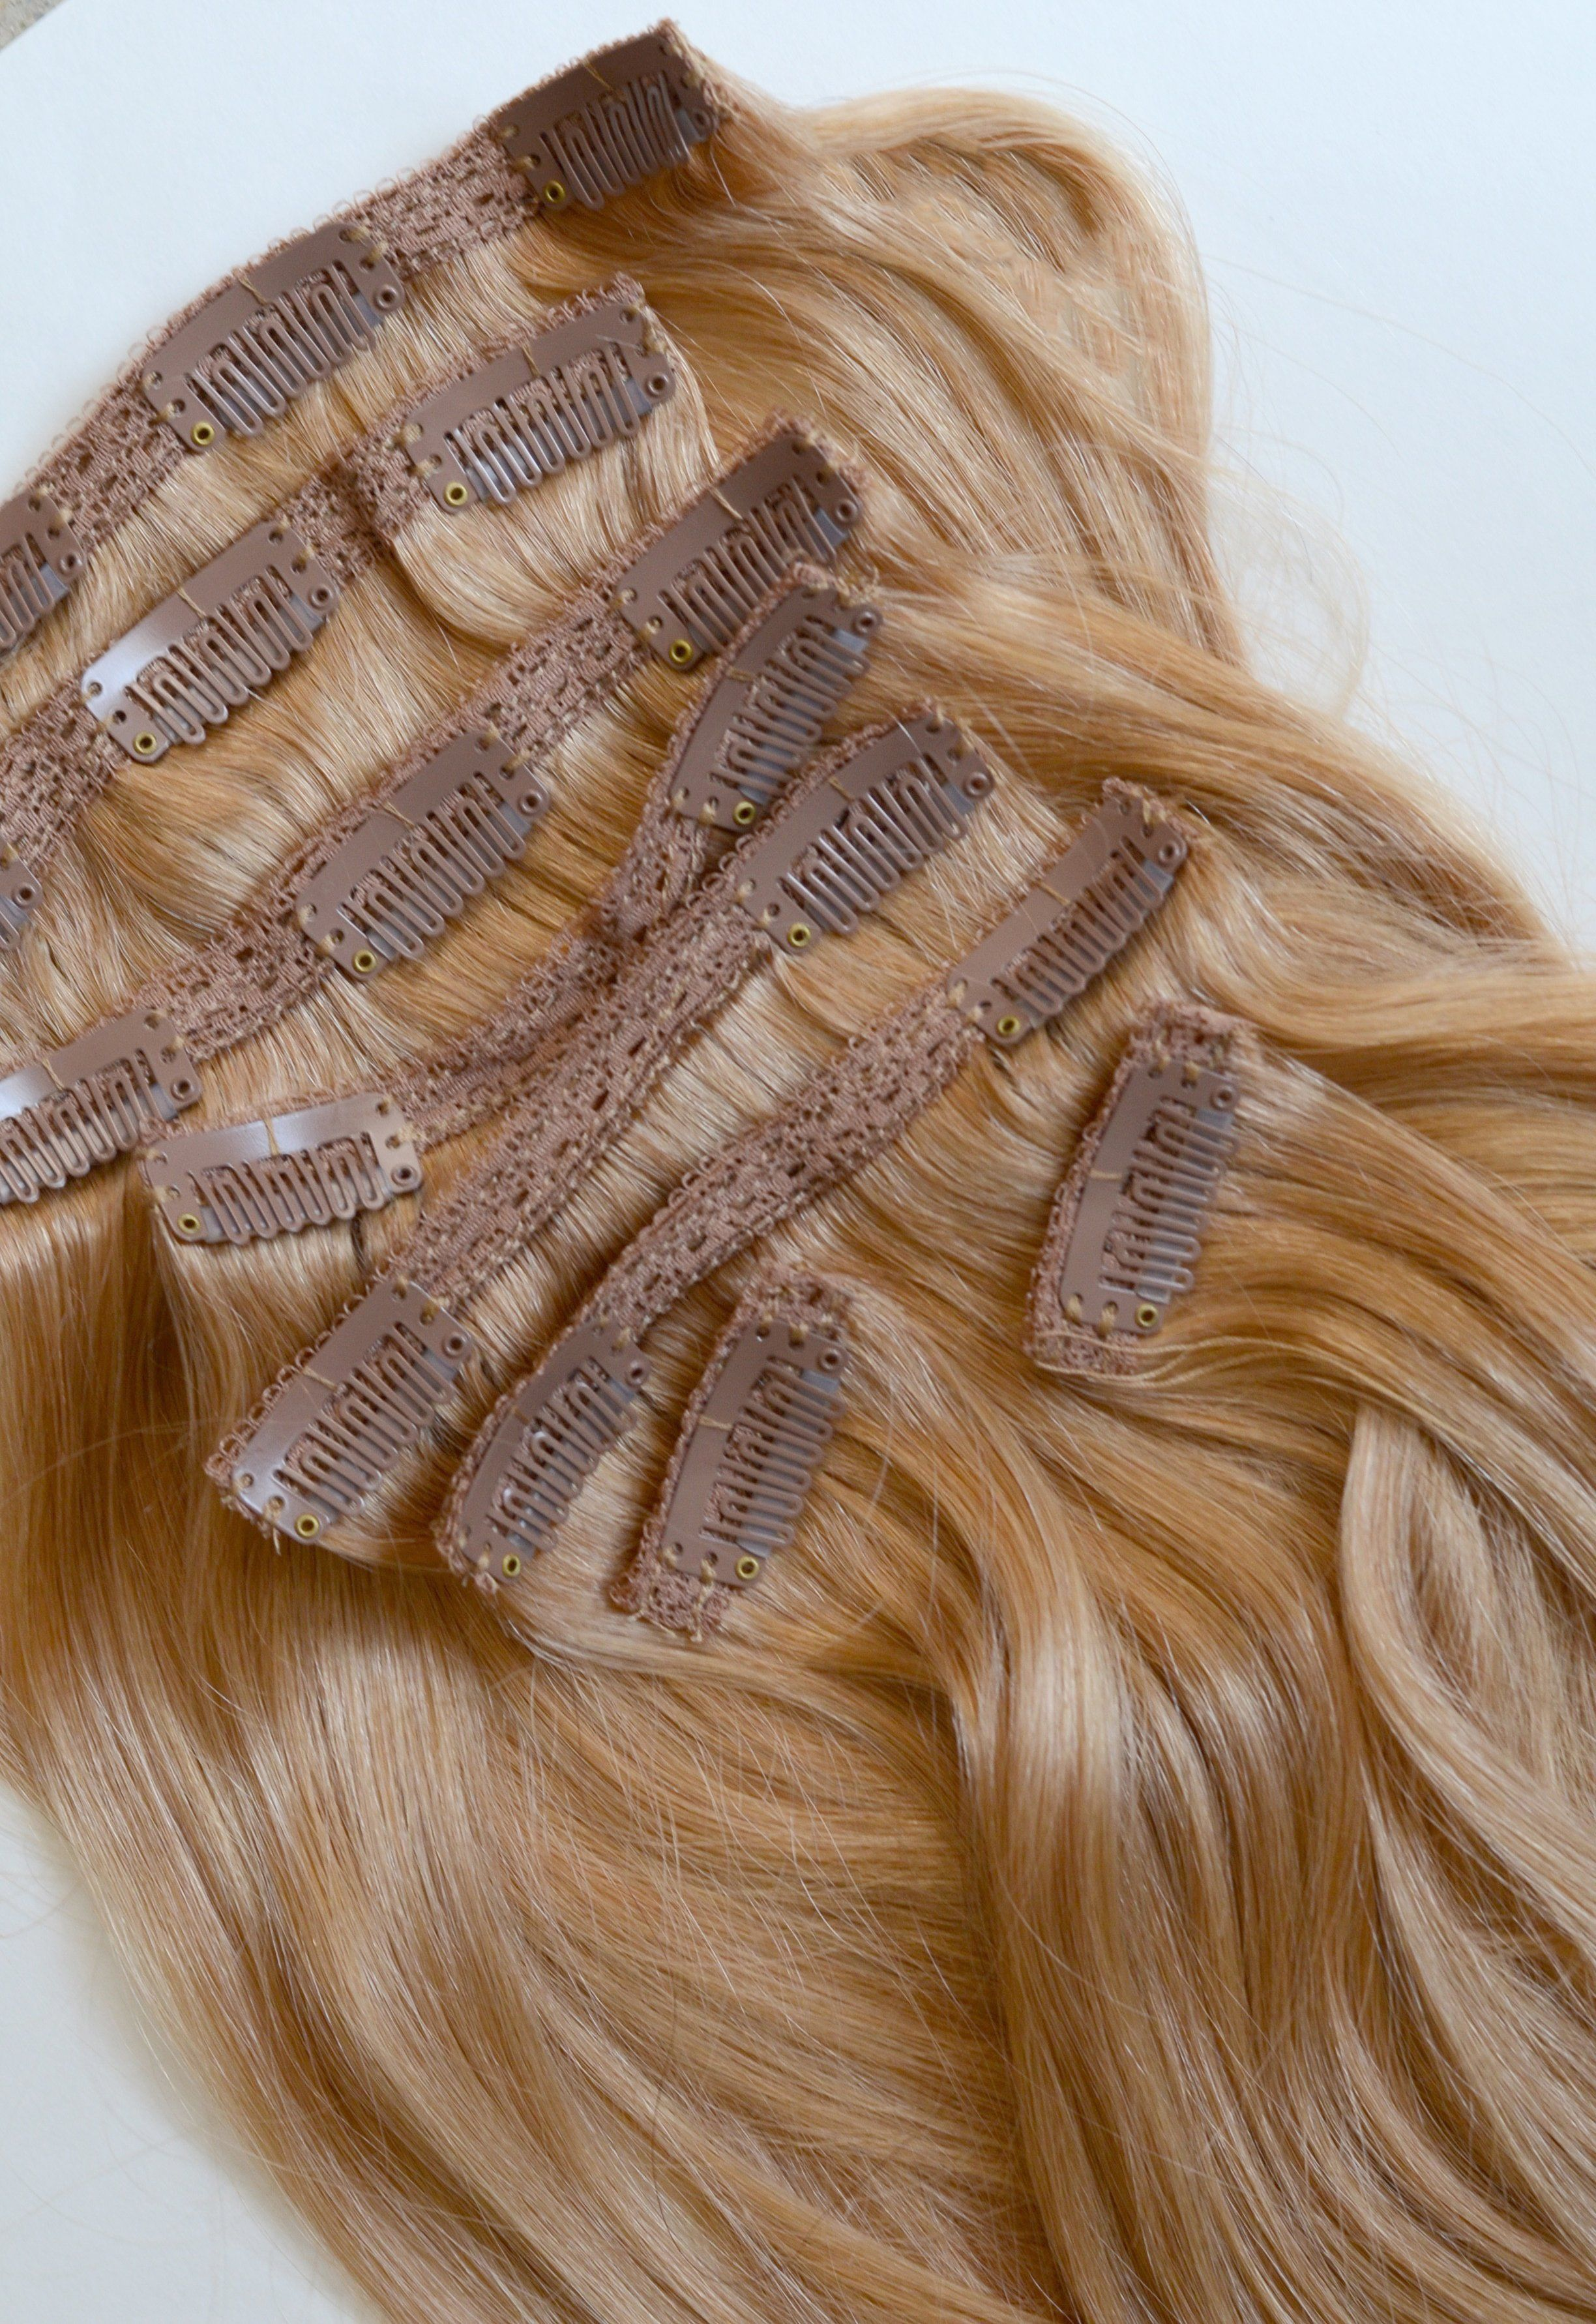 Dirty Blonde Clip In Hair Extensions 20 Inch Set